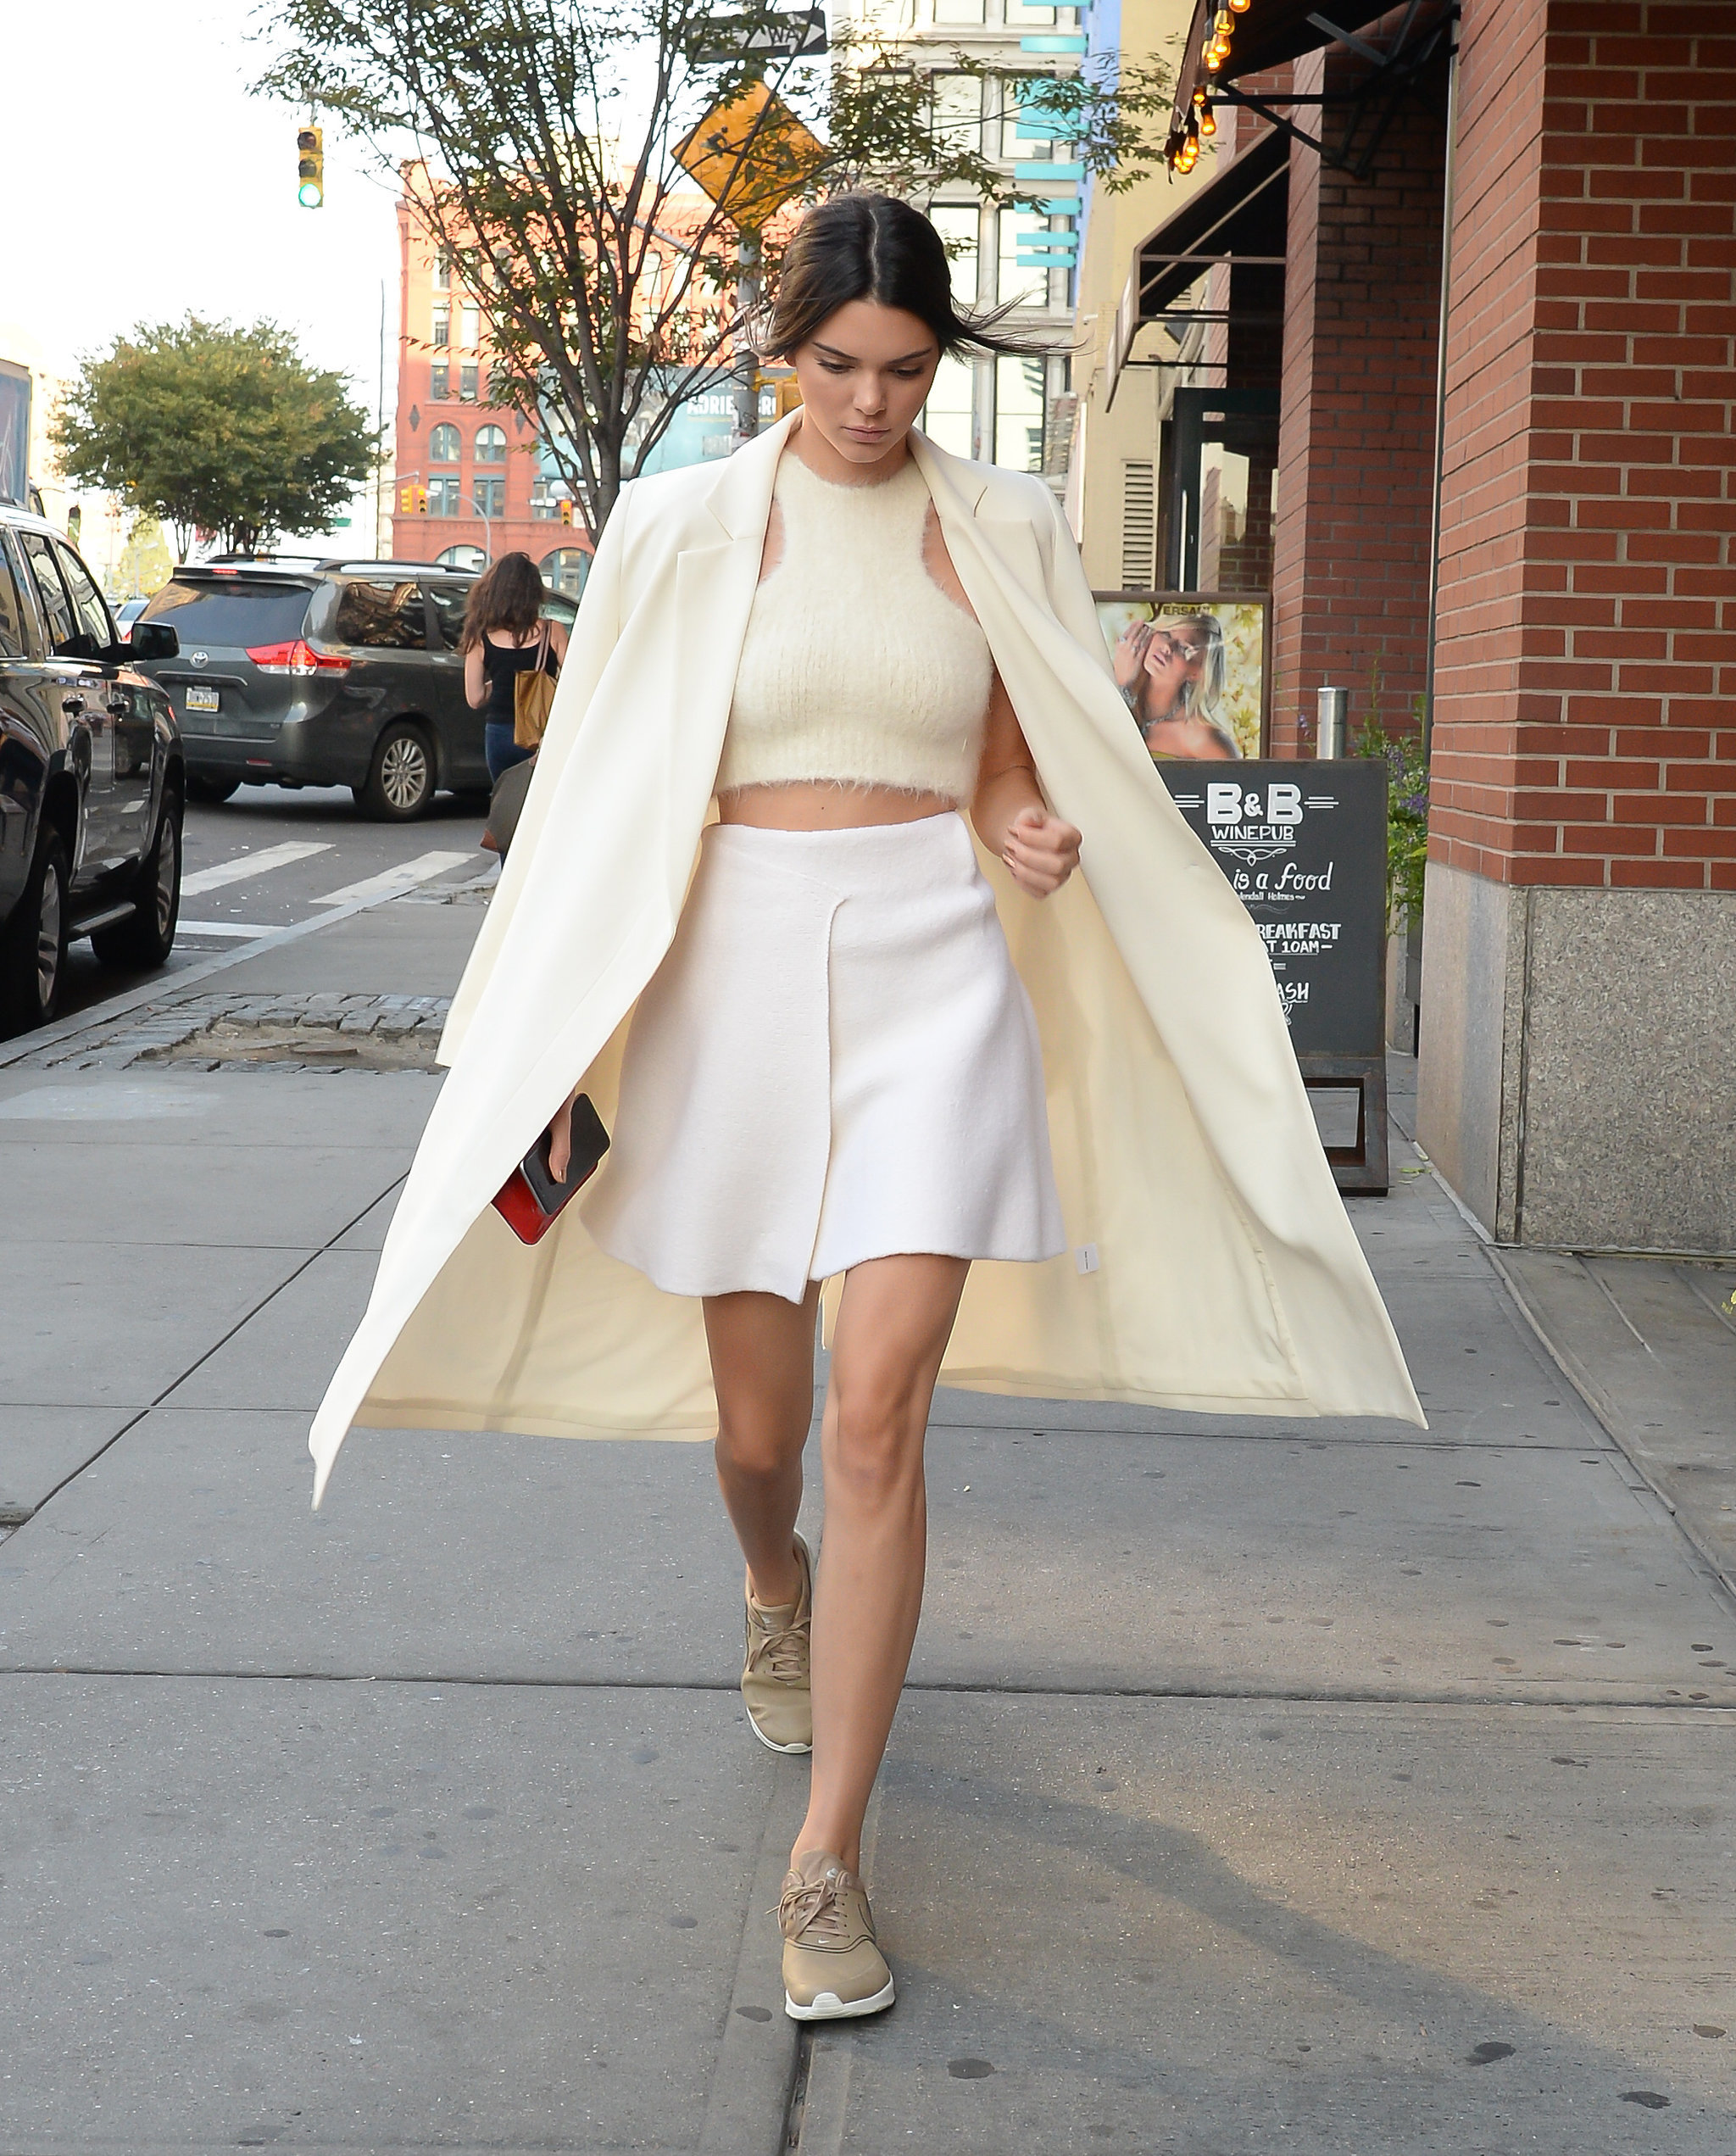 Kendall-sneaker-chic-all-white-outfit-day